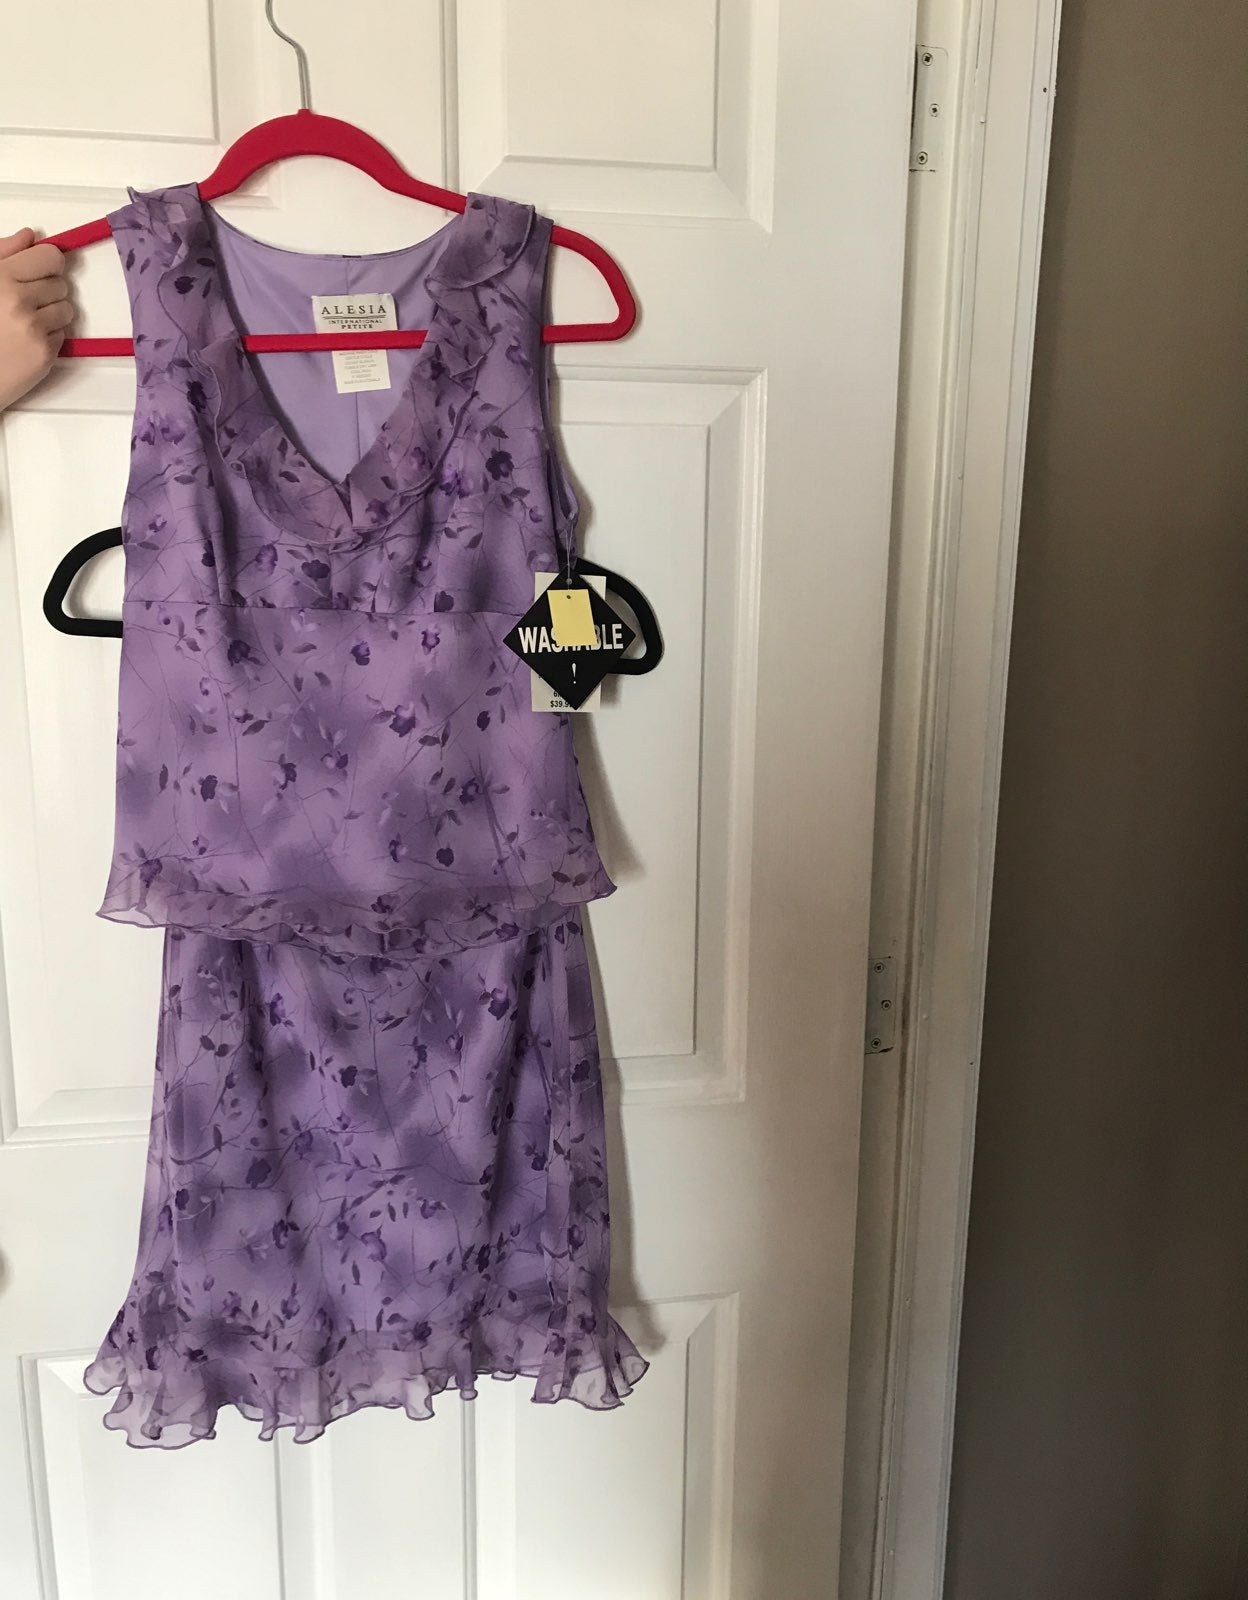 Alesia Floral Dress New With Tags